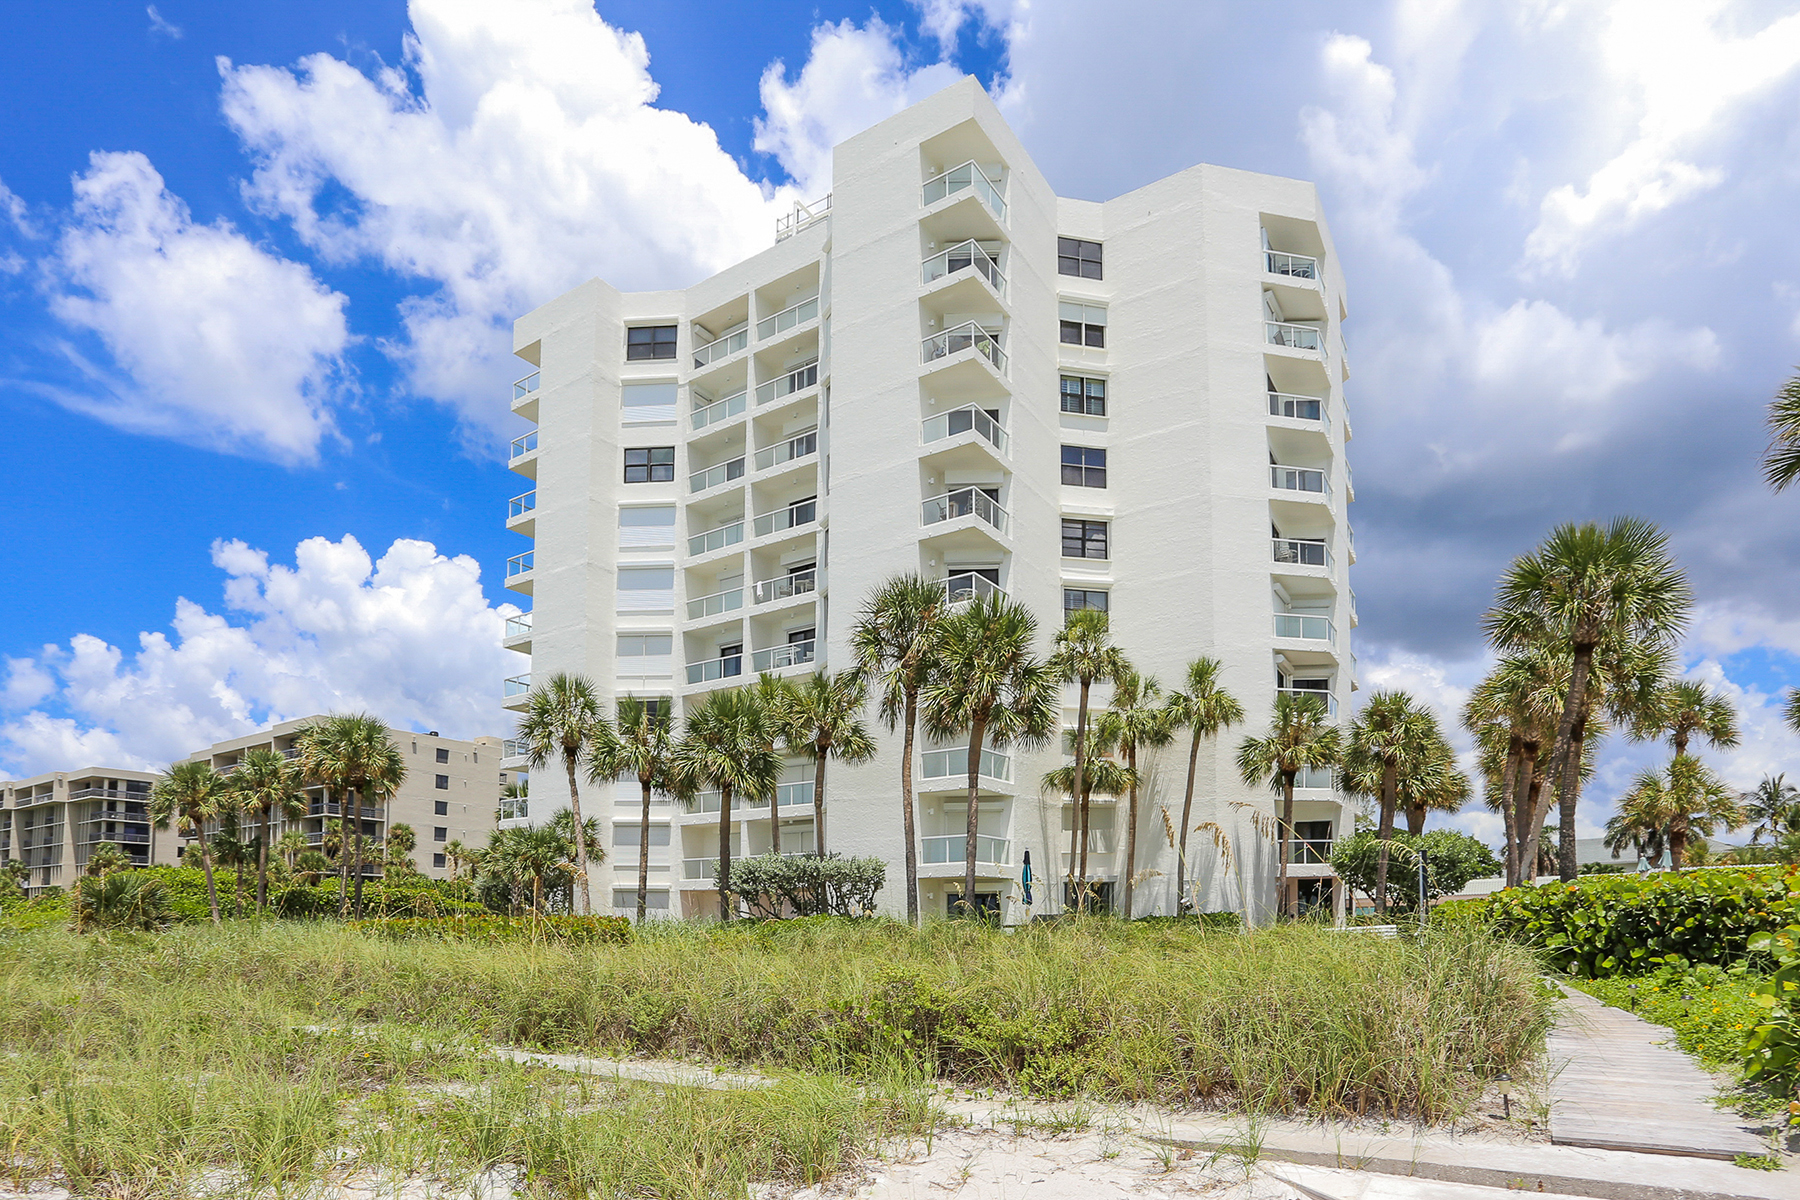 Condominium for Rent at LONGBOAT KEY -PRIVATEER NORTH 1050 Longboat Club Rd 1004, Longboat Key, Florida 34228 United States